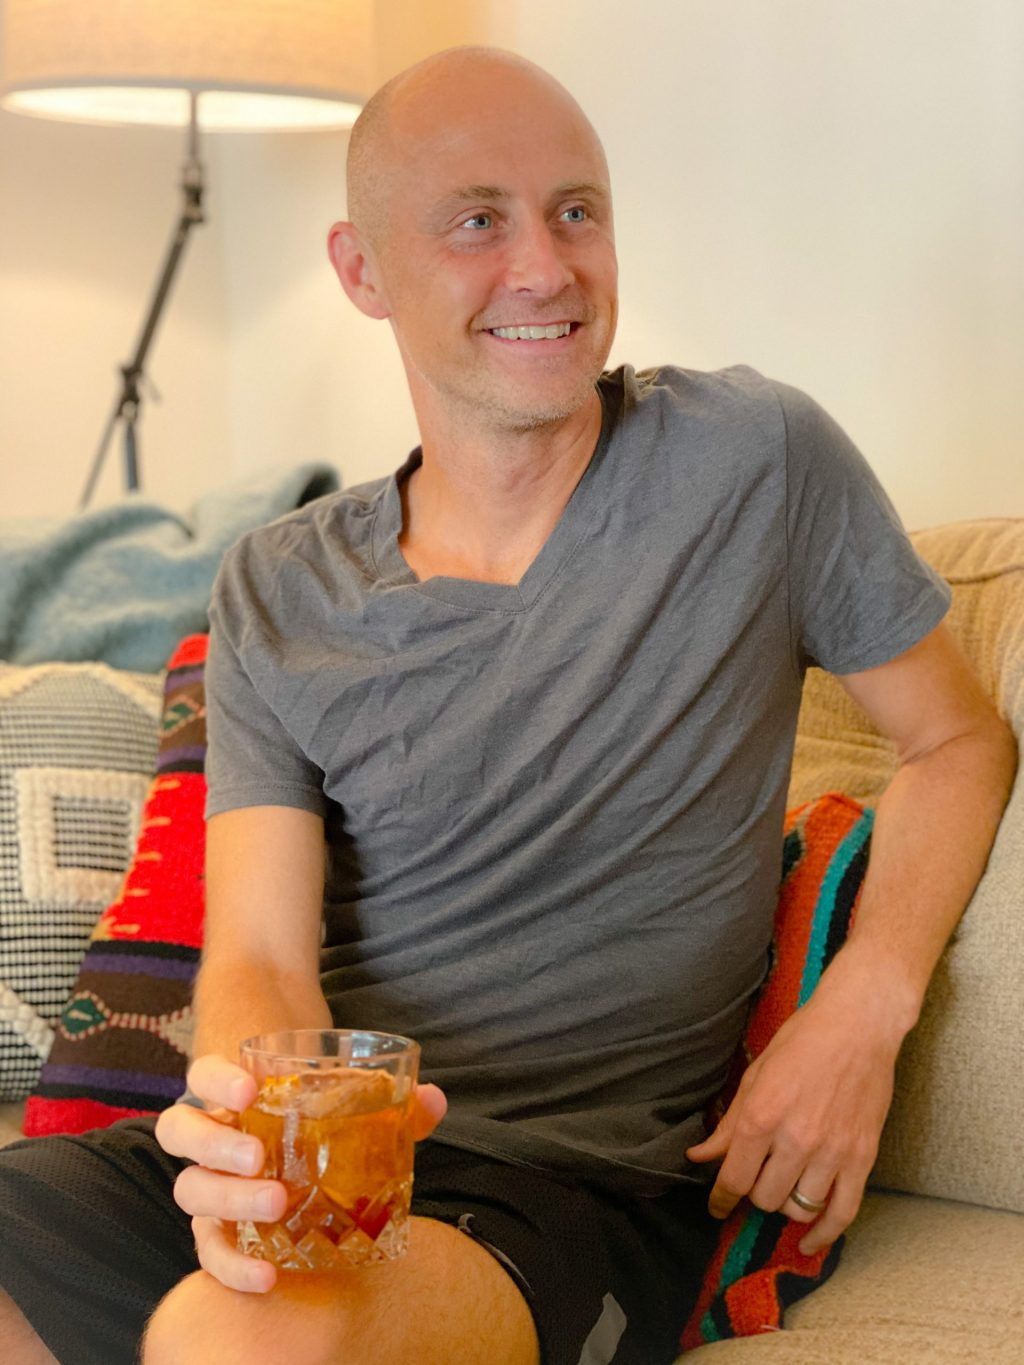 bald man wearing gray t-shirt sitting on a brown couch holding an old fashioned cocktail in a glass